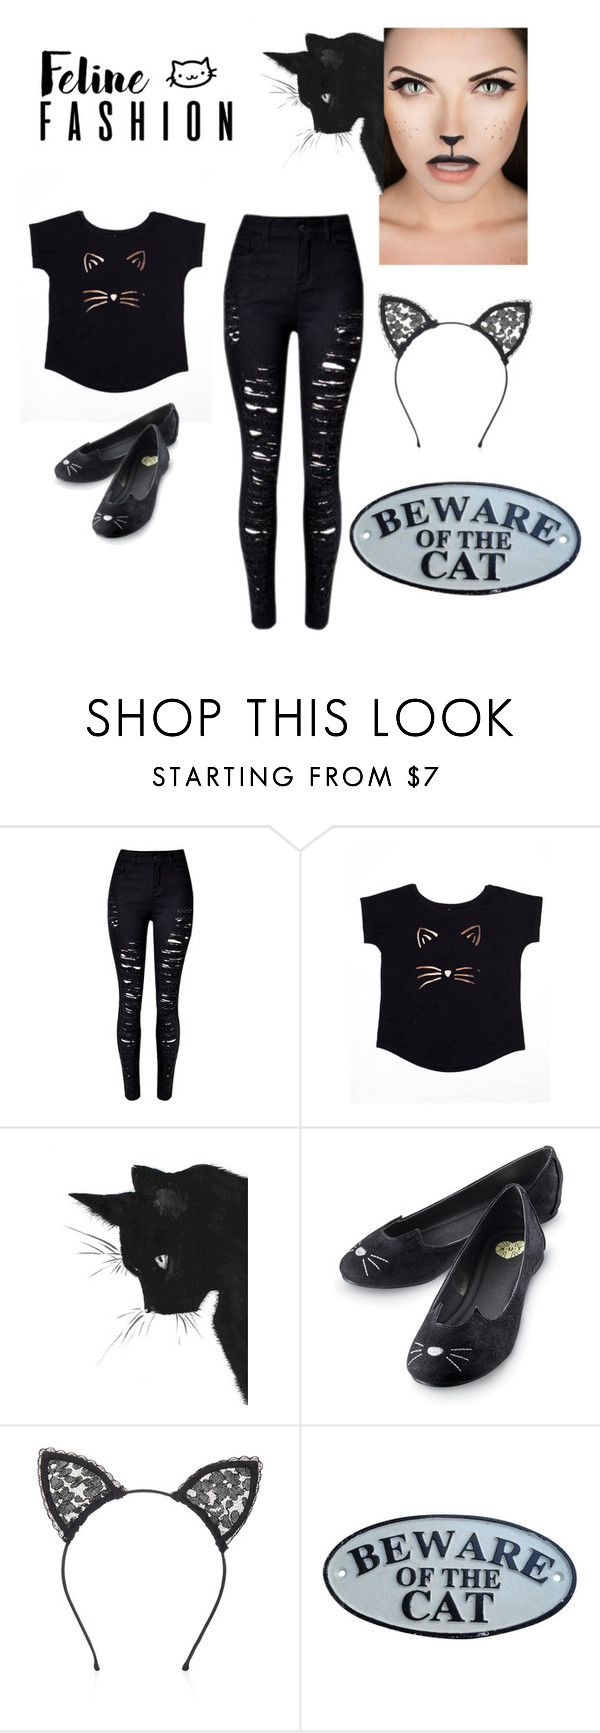 """""""Contest Entry"""" by primadonnamode ❤ liked on Polyvore featuring Fleur du Mal"""